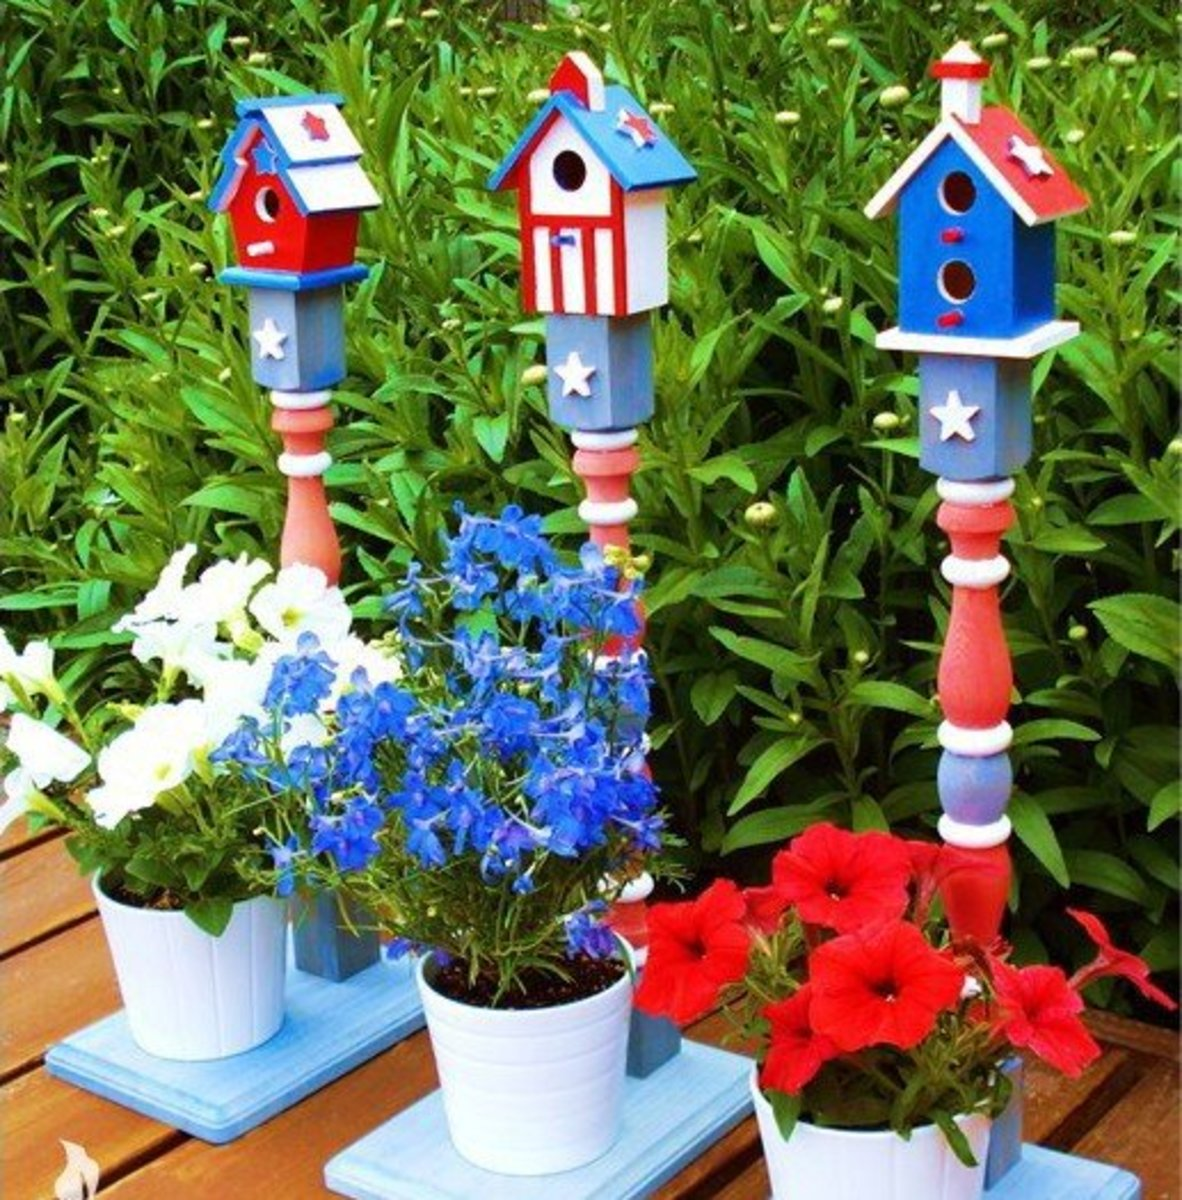 48 Patriotic Craft Ideas: 4th of July and Memorial Day